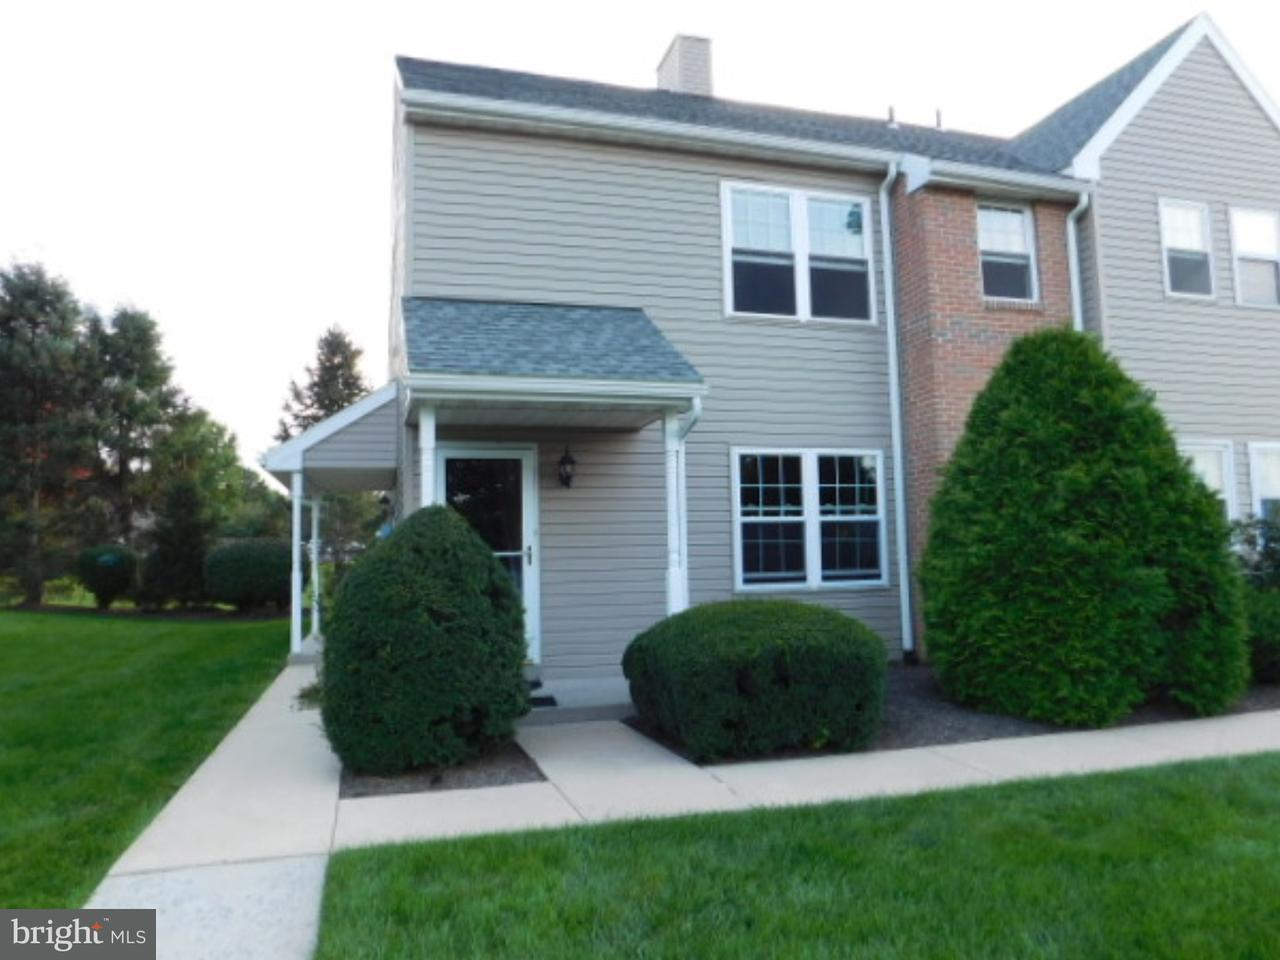 Single Family Home for Rent at 302 PETERS WAY Wyomissing, Pennsylvania 19610 United States